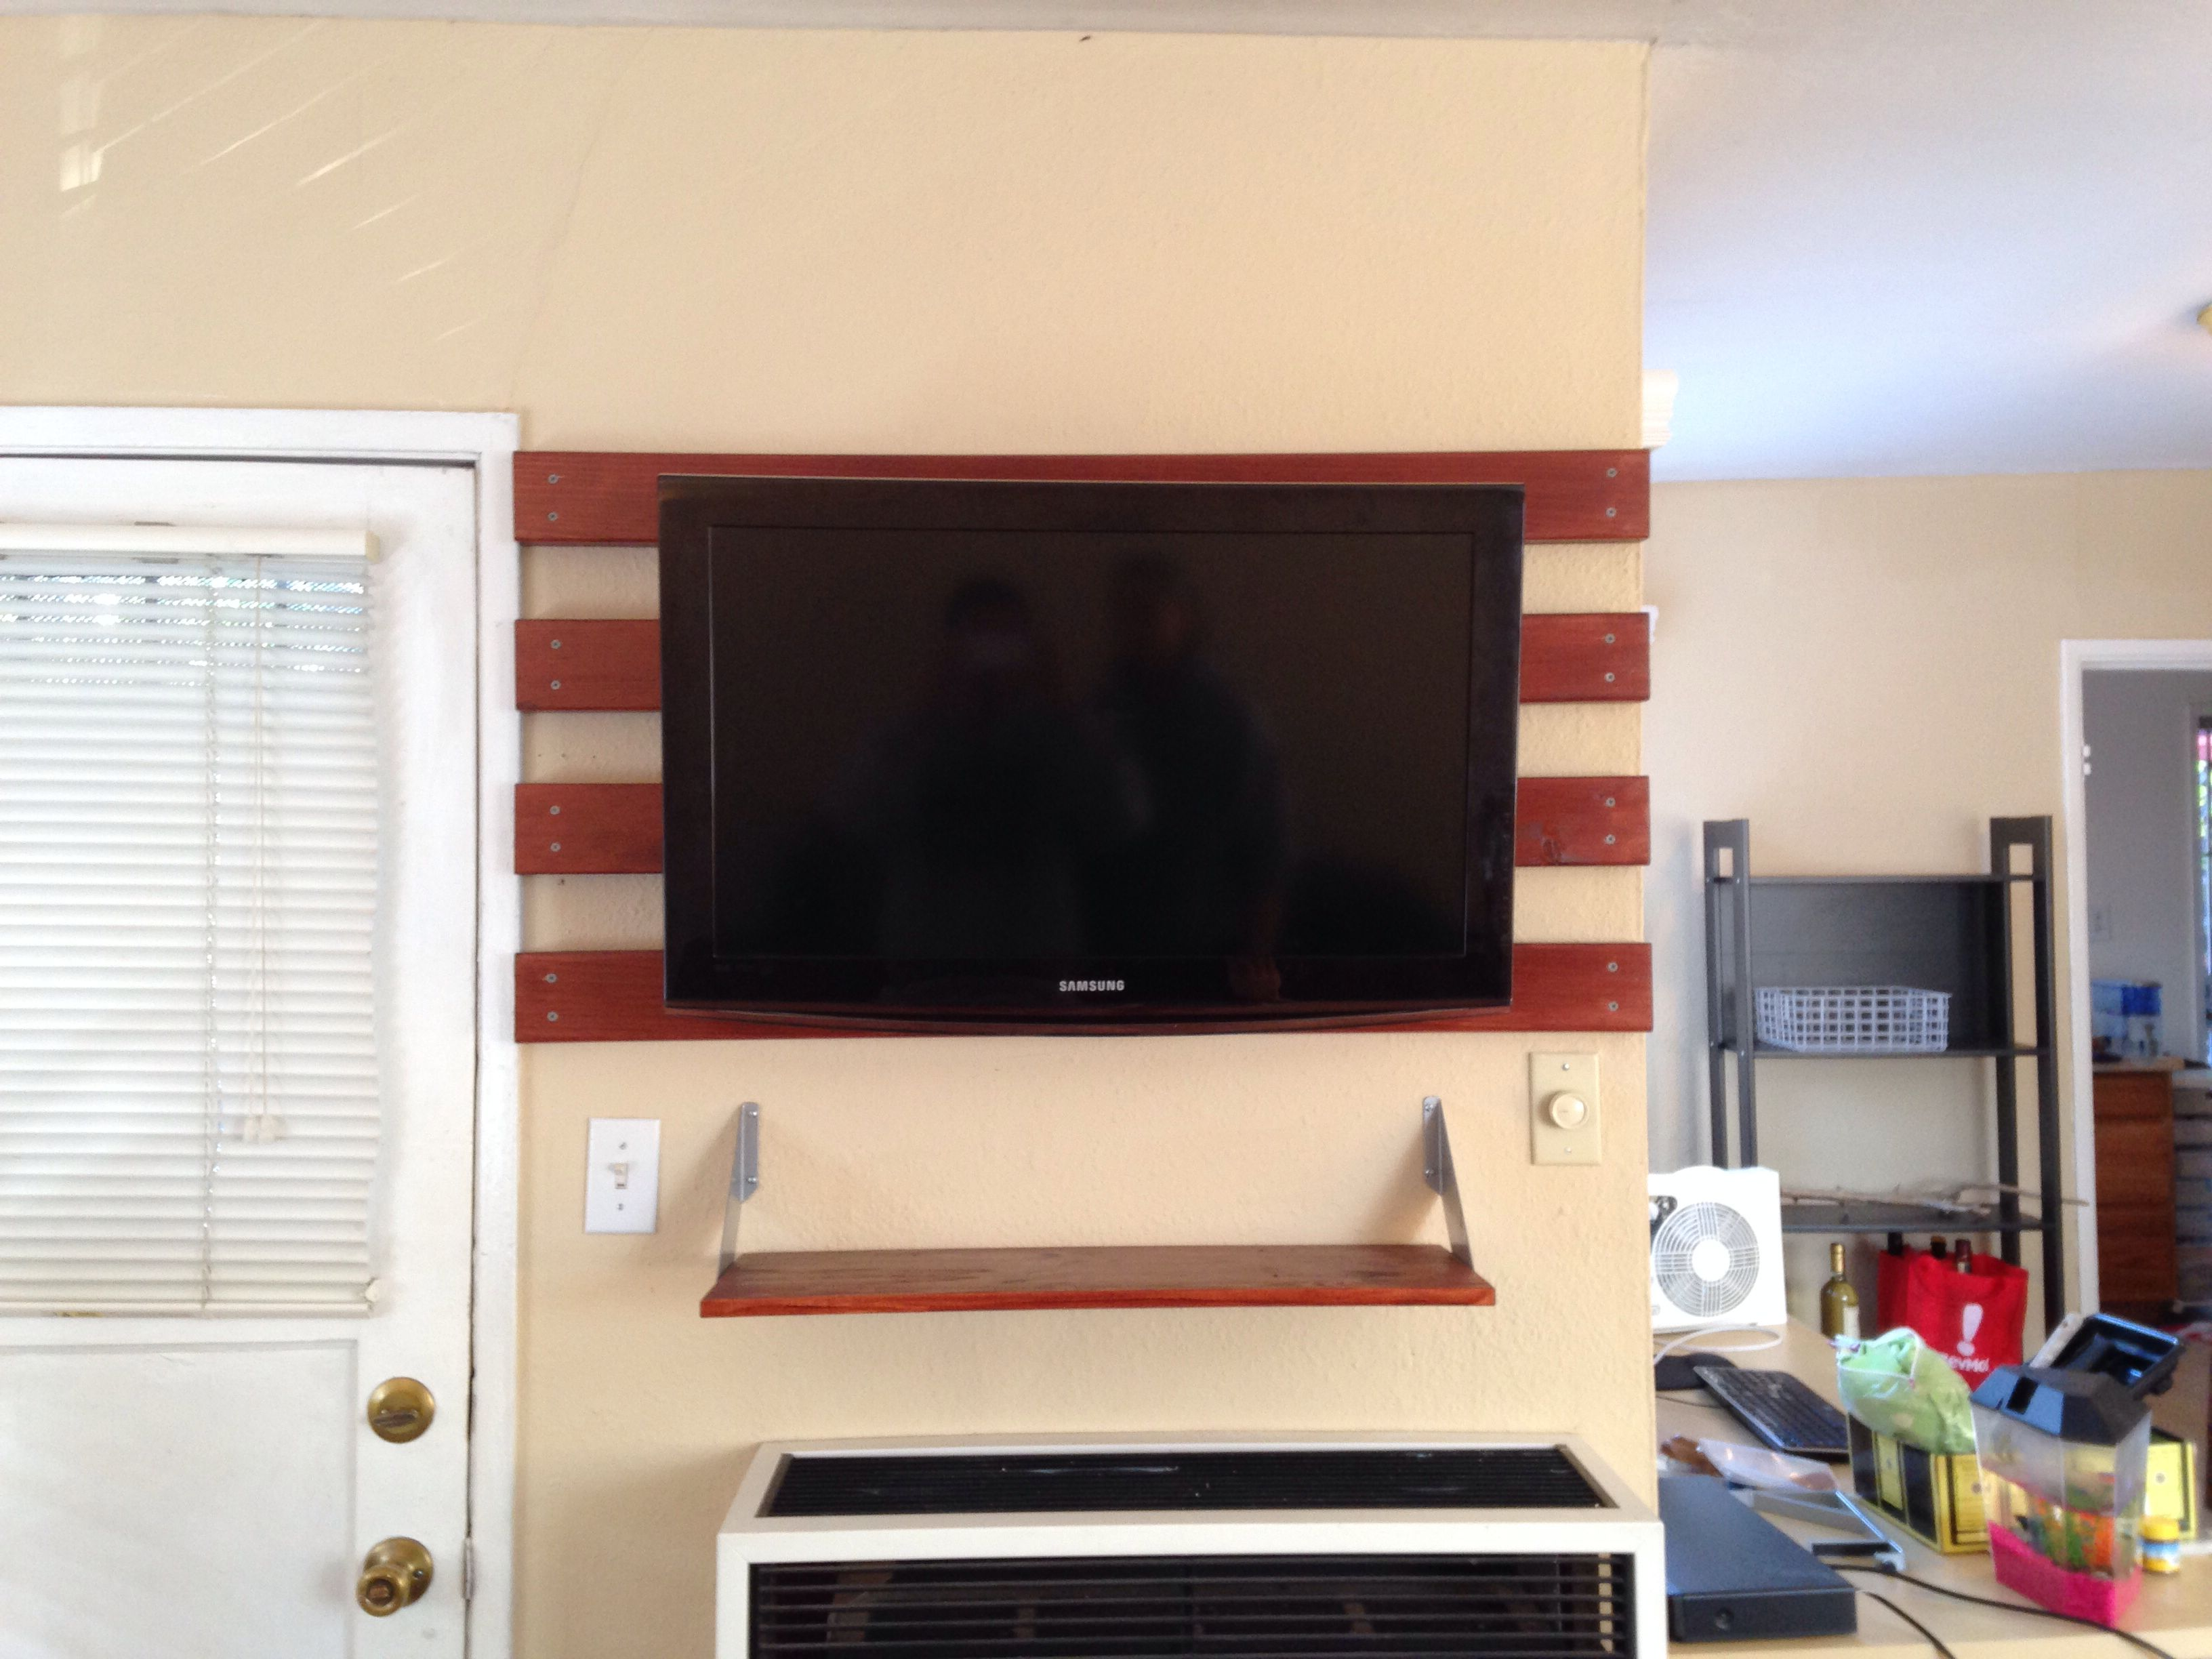 Dyi Wall Mounted Tv With No Stud We Wanted To Wall Mount Tv But Couldn T Find A Stud In The Appropriate Place Wall Mounted Tv Mounted Tv Living Room Remodel